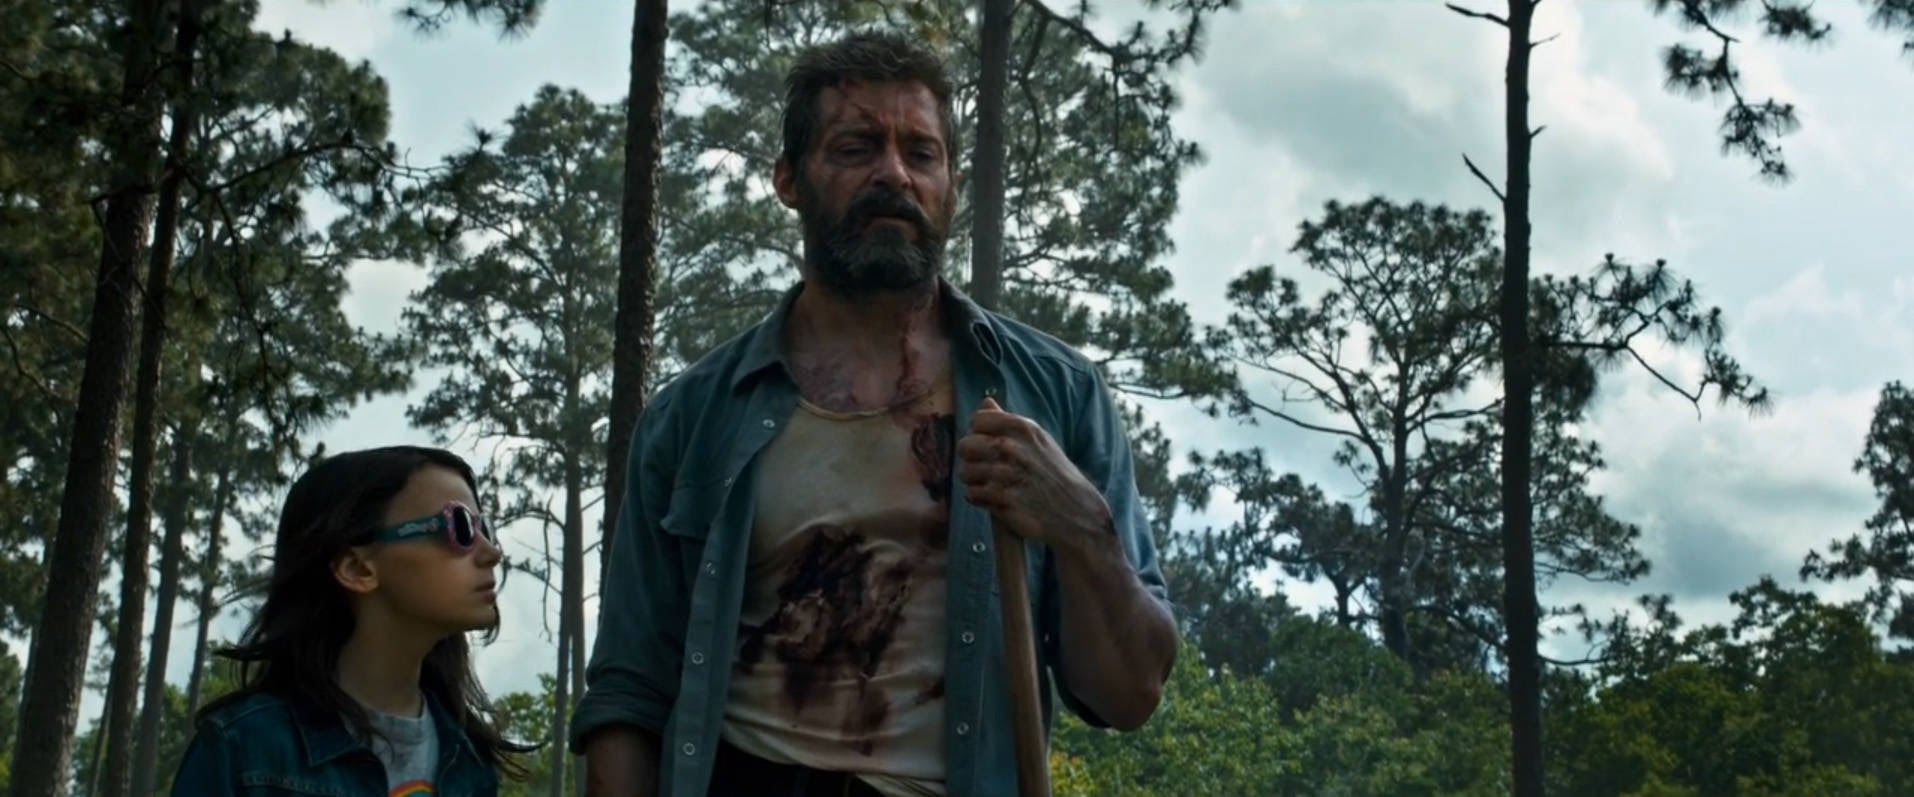 New Logan Teaser Image Hints at Possible Big Spoiler